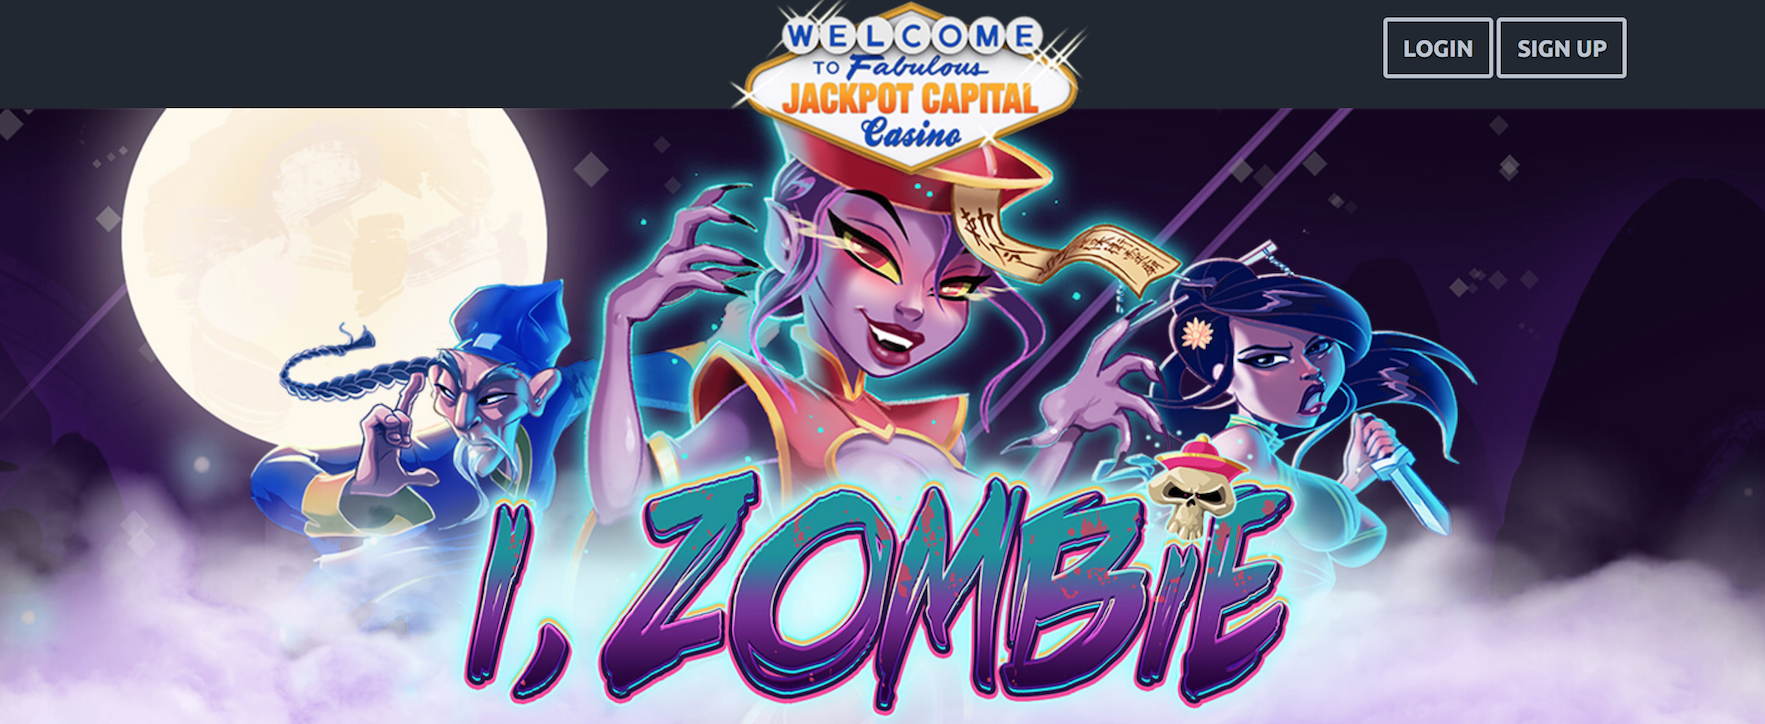 Witches And Zombies Bonuses From Jackpot Capital Casino